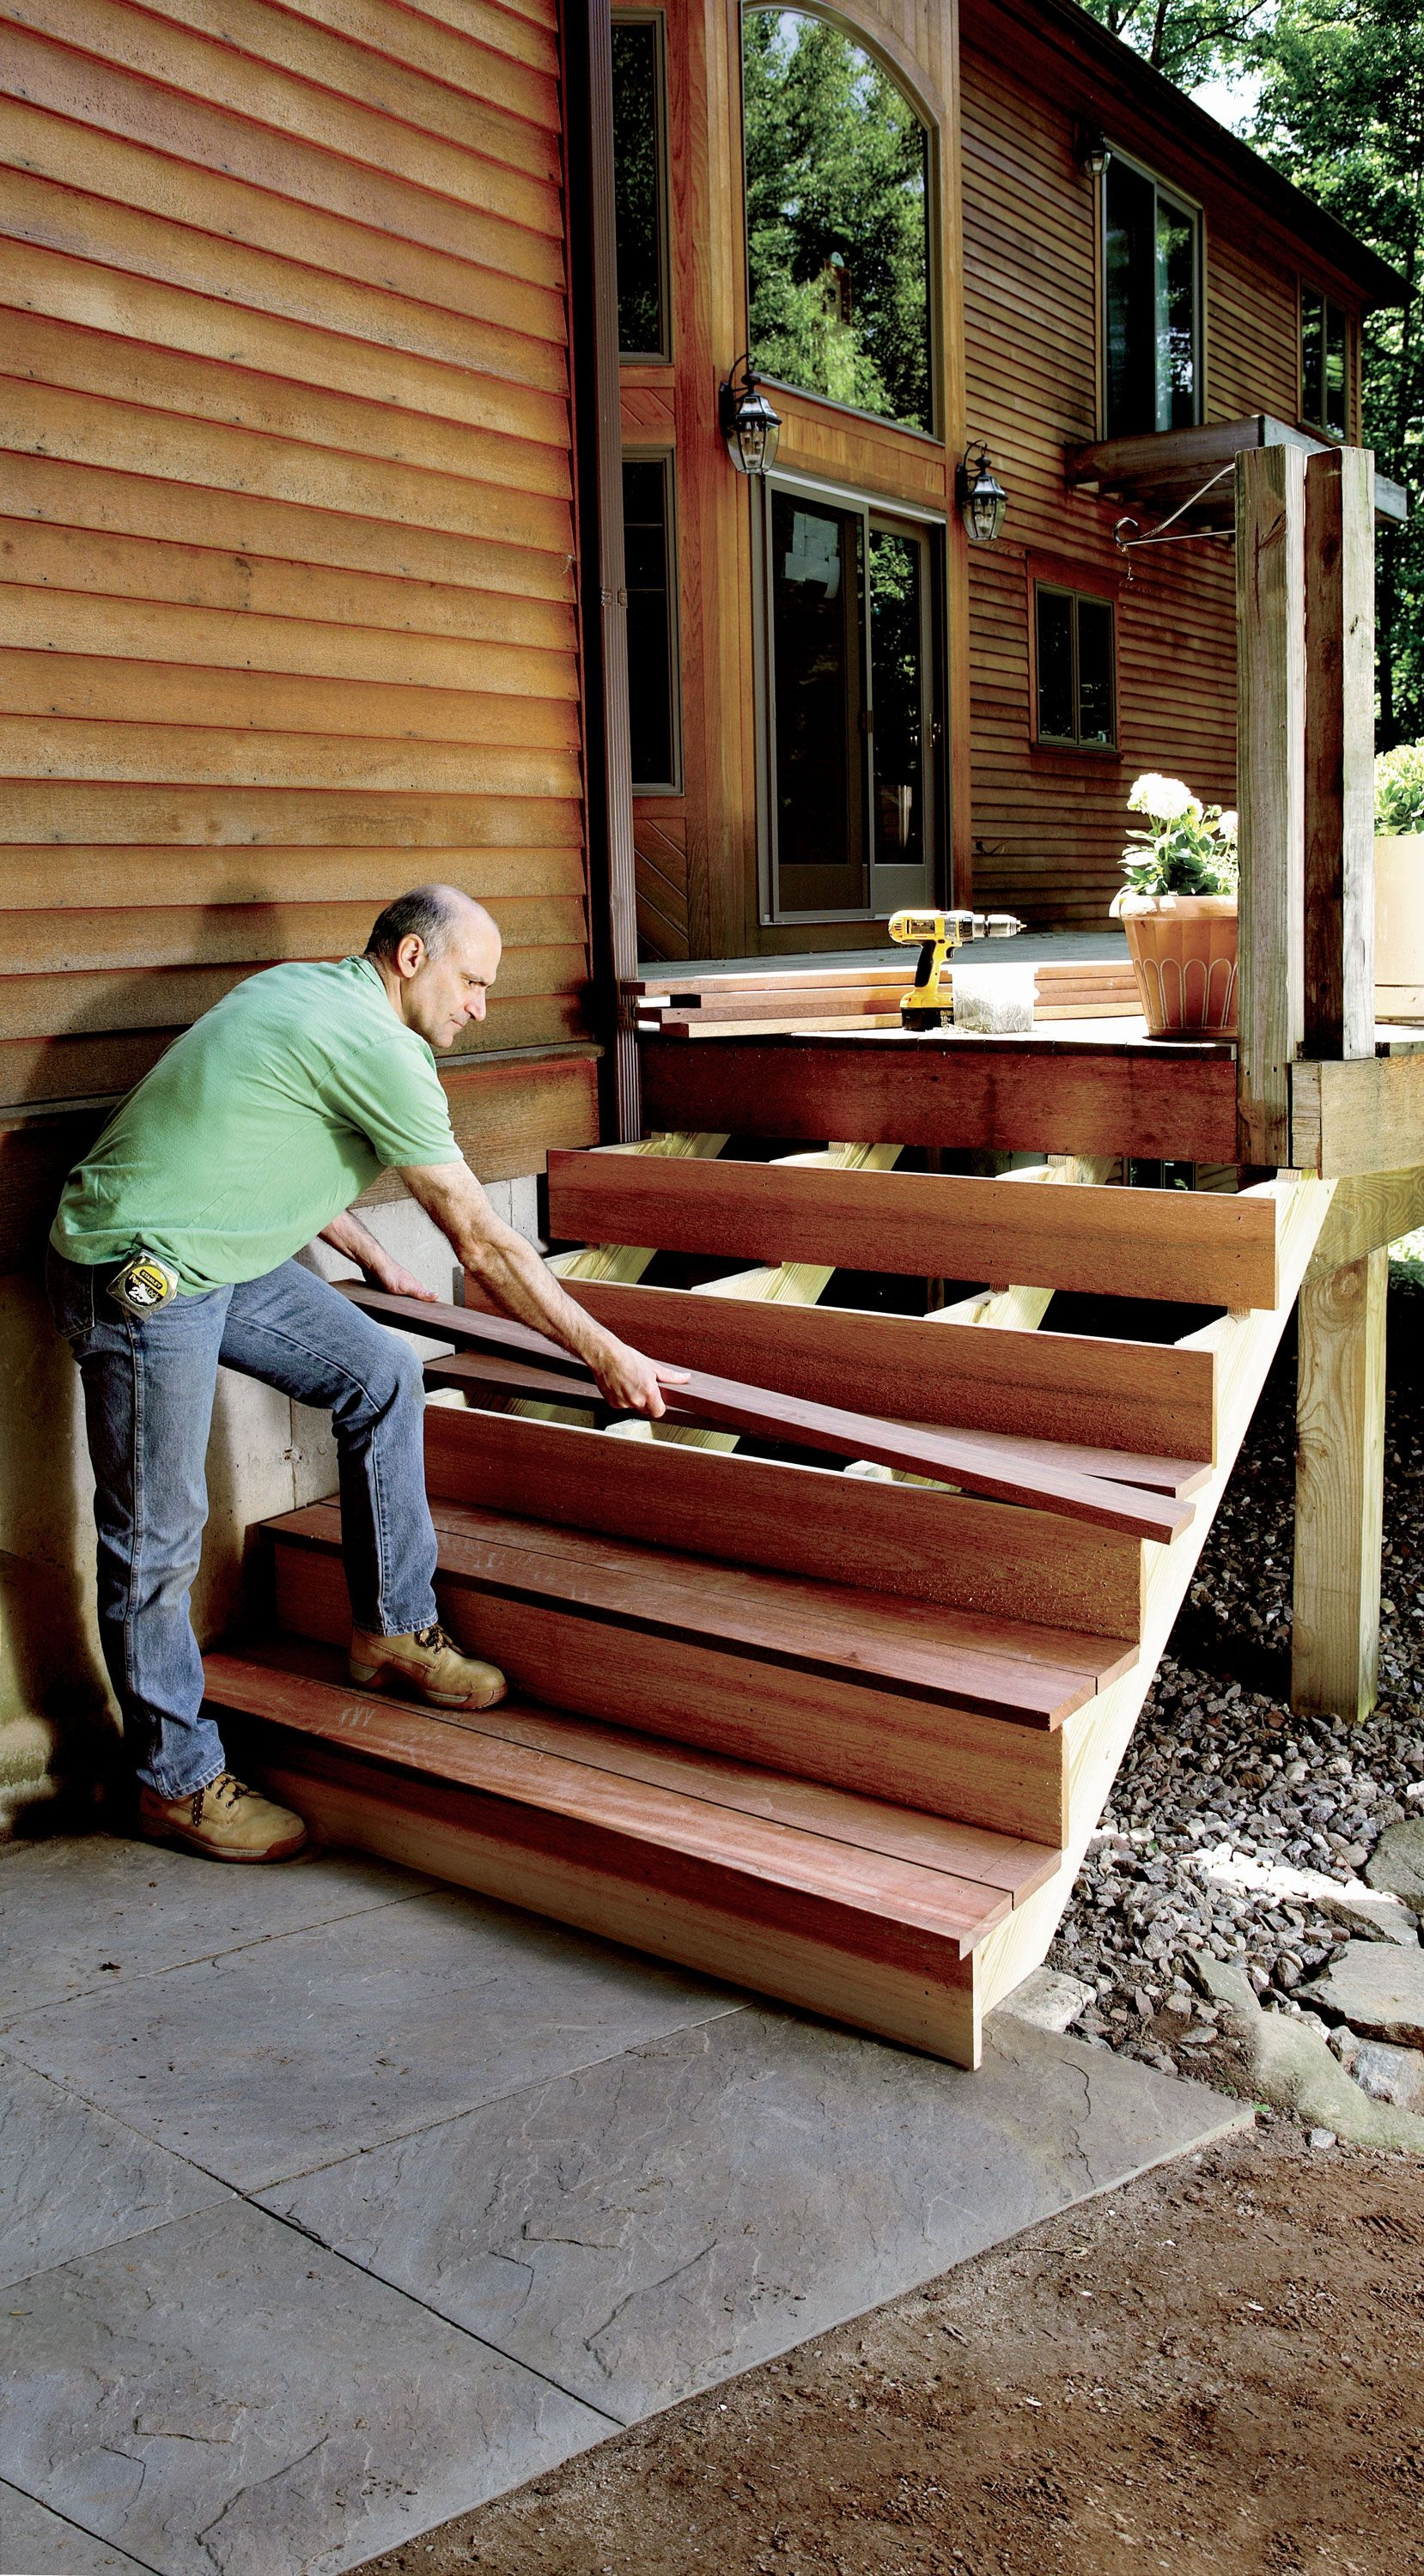 How To Build Stairs Stairs Design Plans | Already Made Wooden Steps | Hardwood | Concrete Steps | Stair Case | Spiral Staircase | Handrail